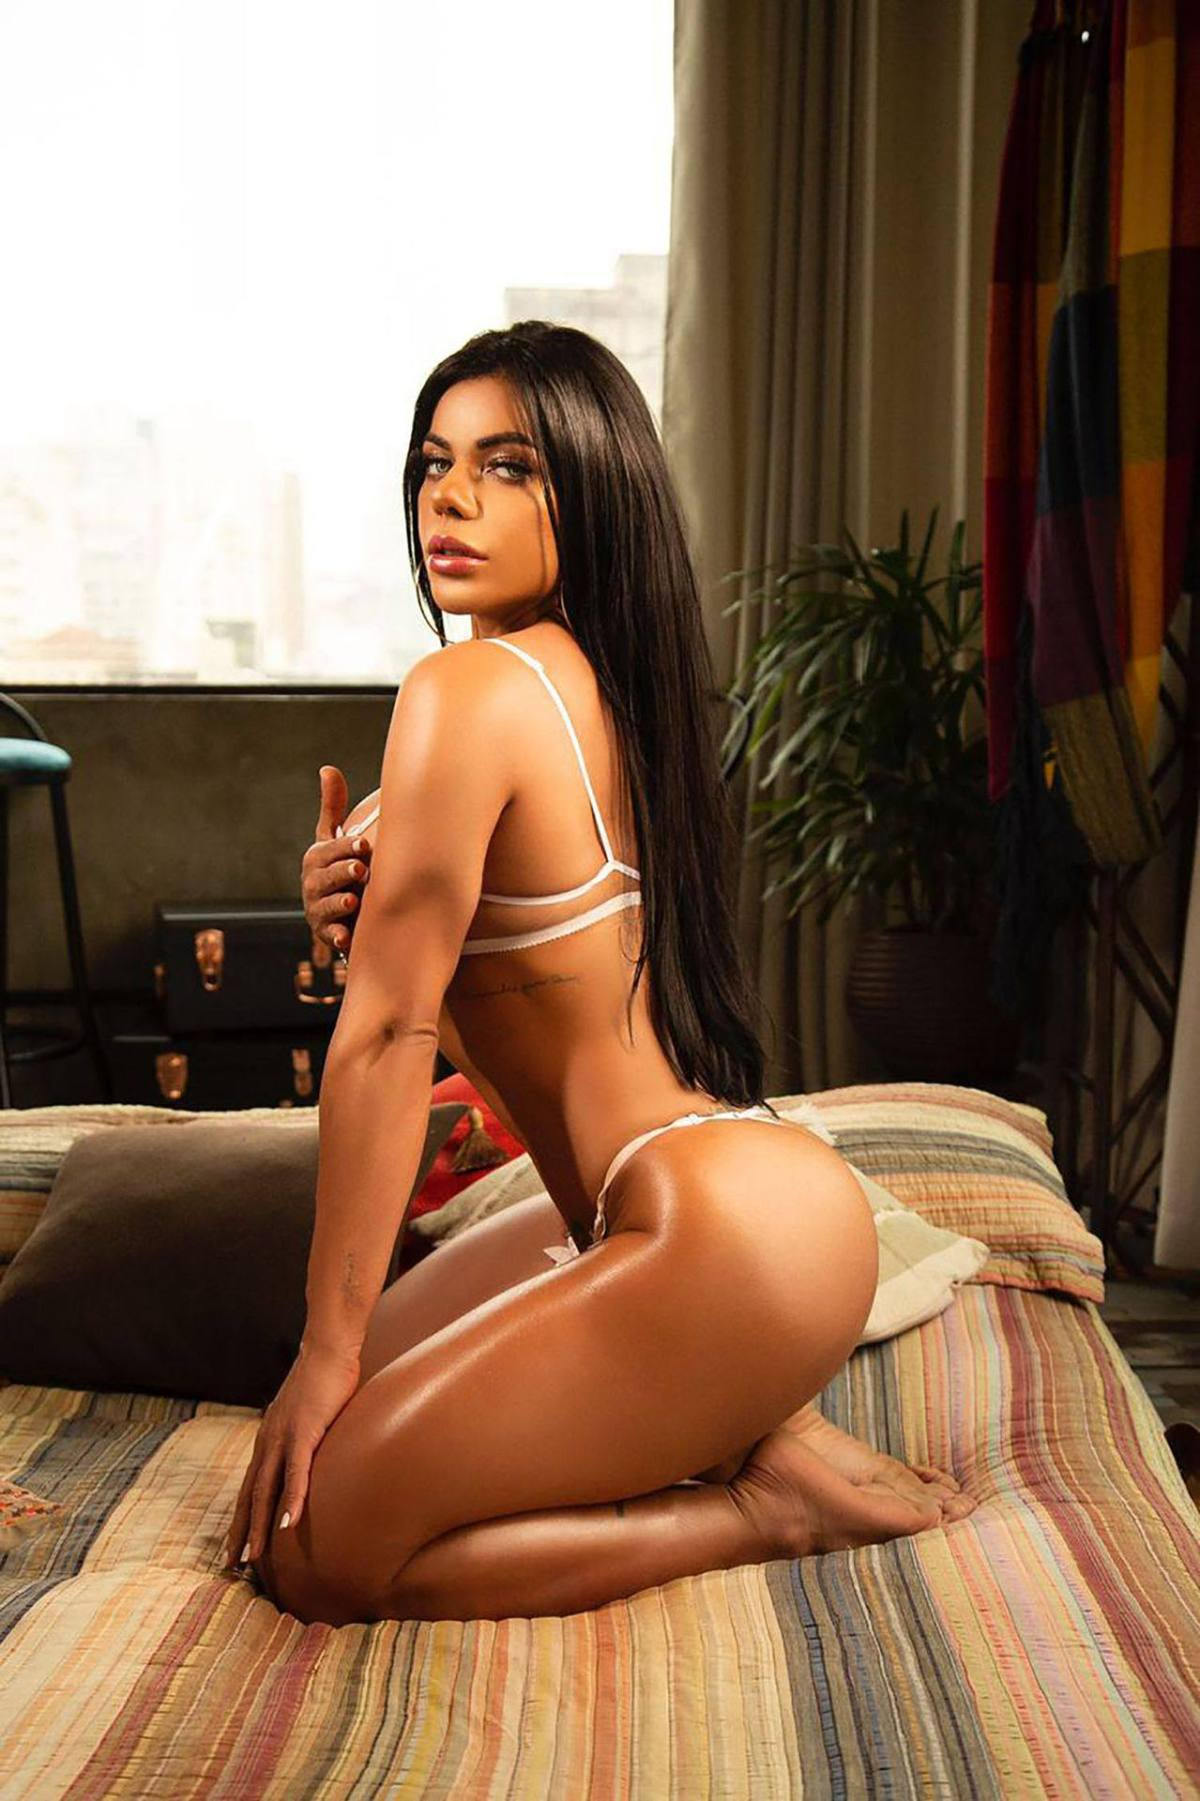 Suzy Cortez - Sexy Big Ass in Hot Lingerie Photoshoot